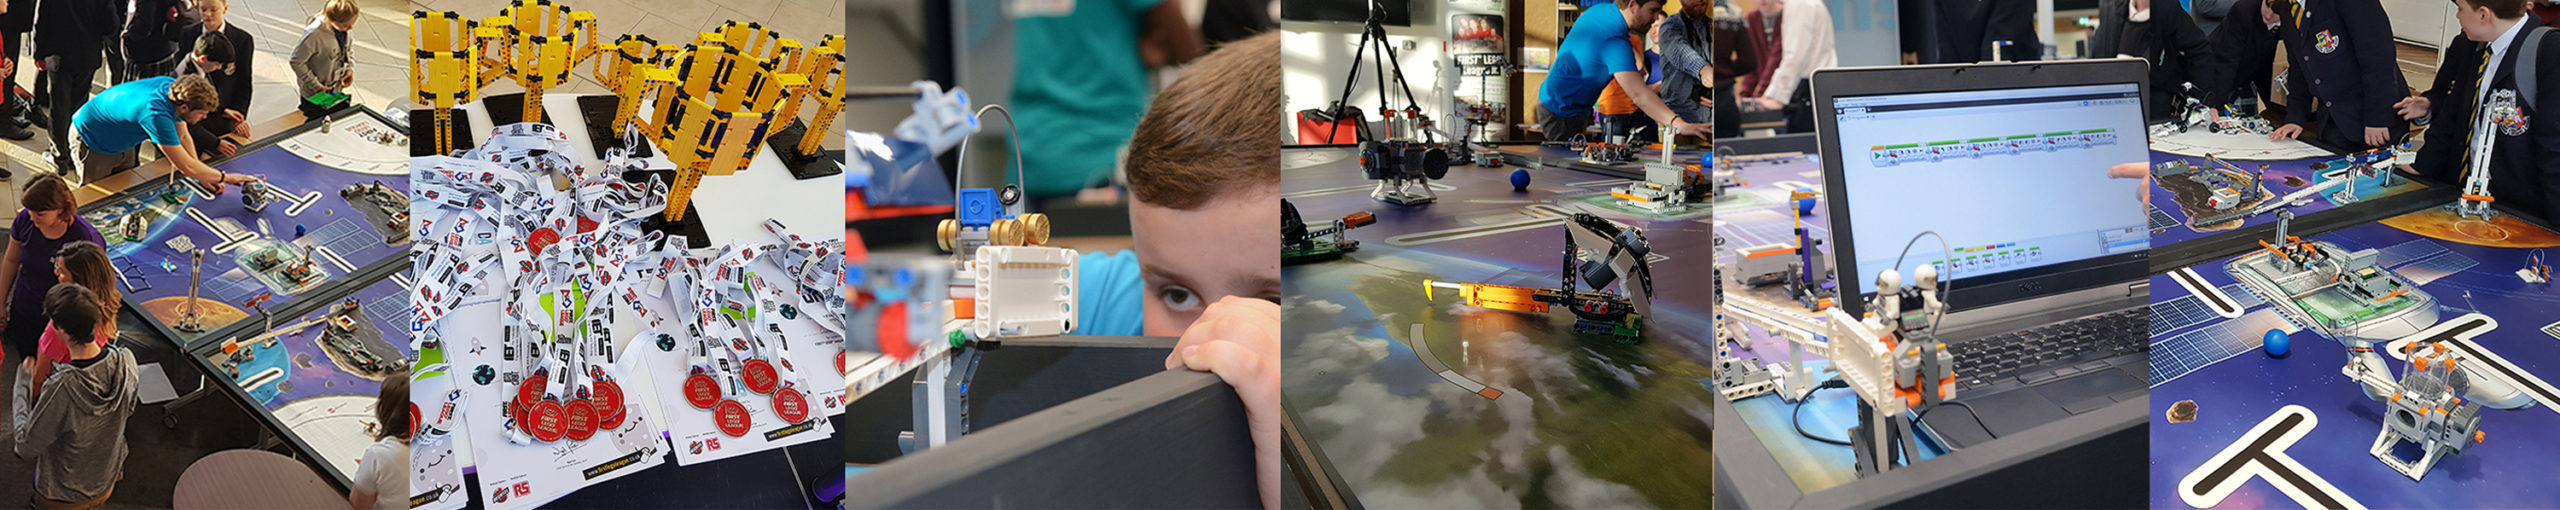 The IET FIRST LEGO League photo mix